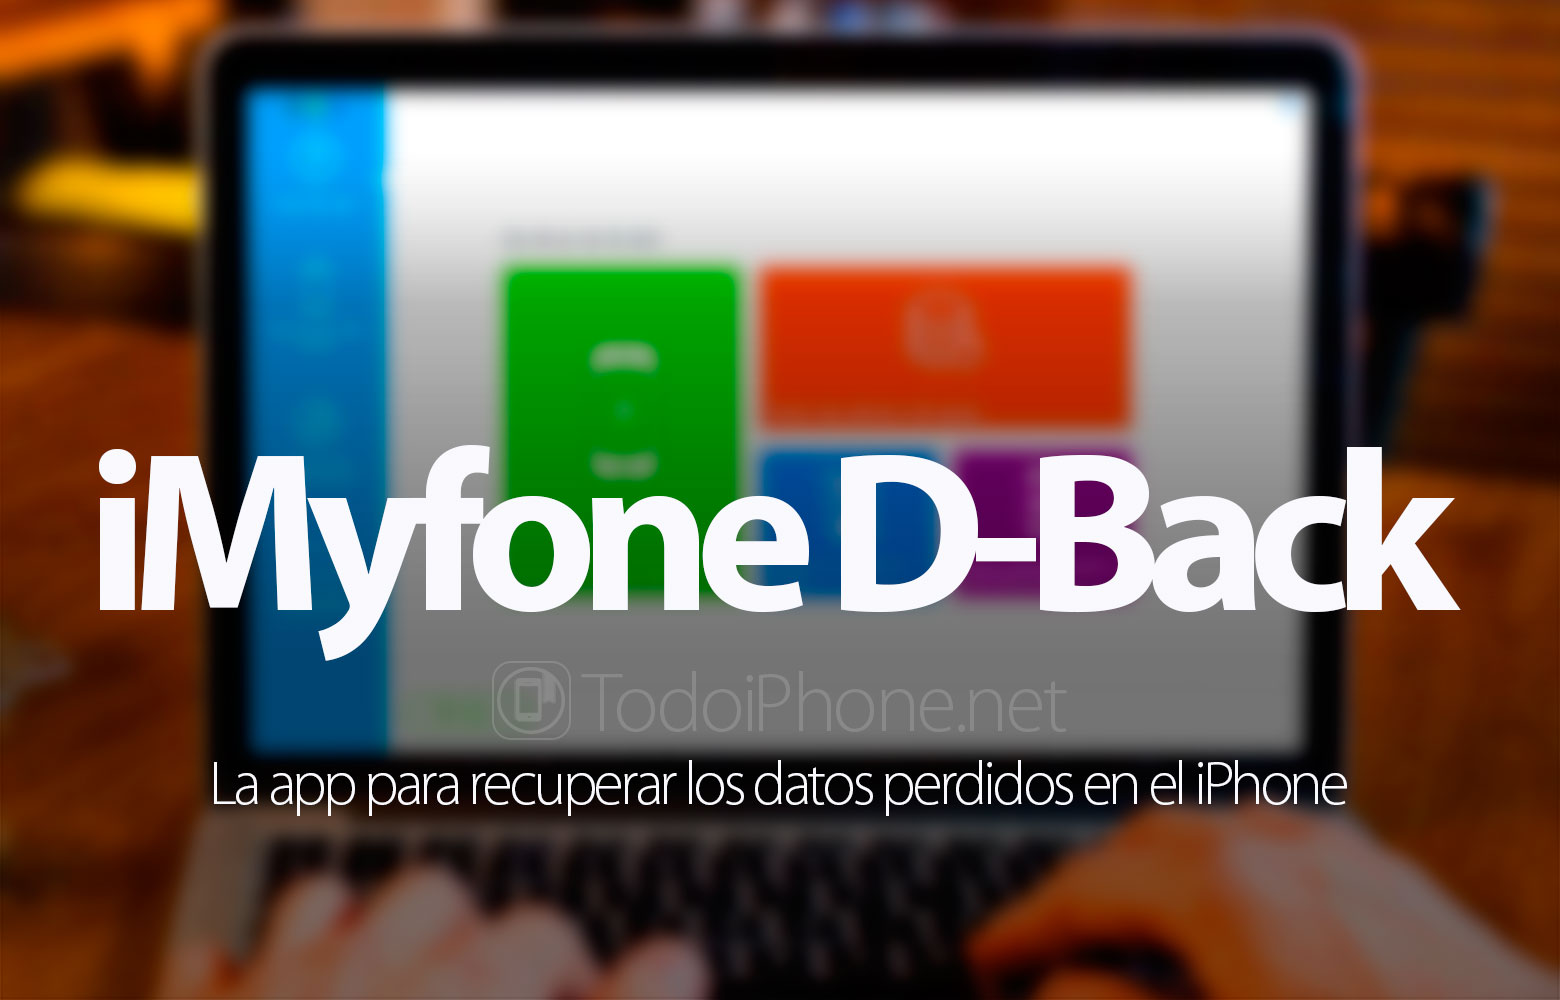 Recover lost data on iPhone? IMyfone D-Back test 2